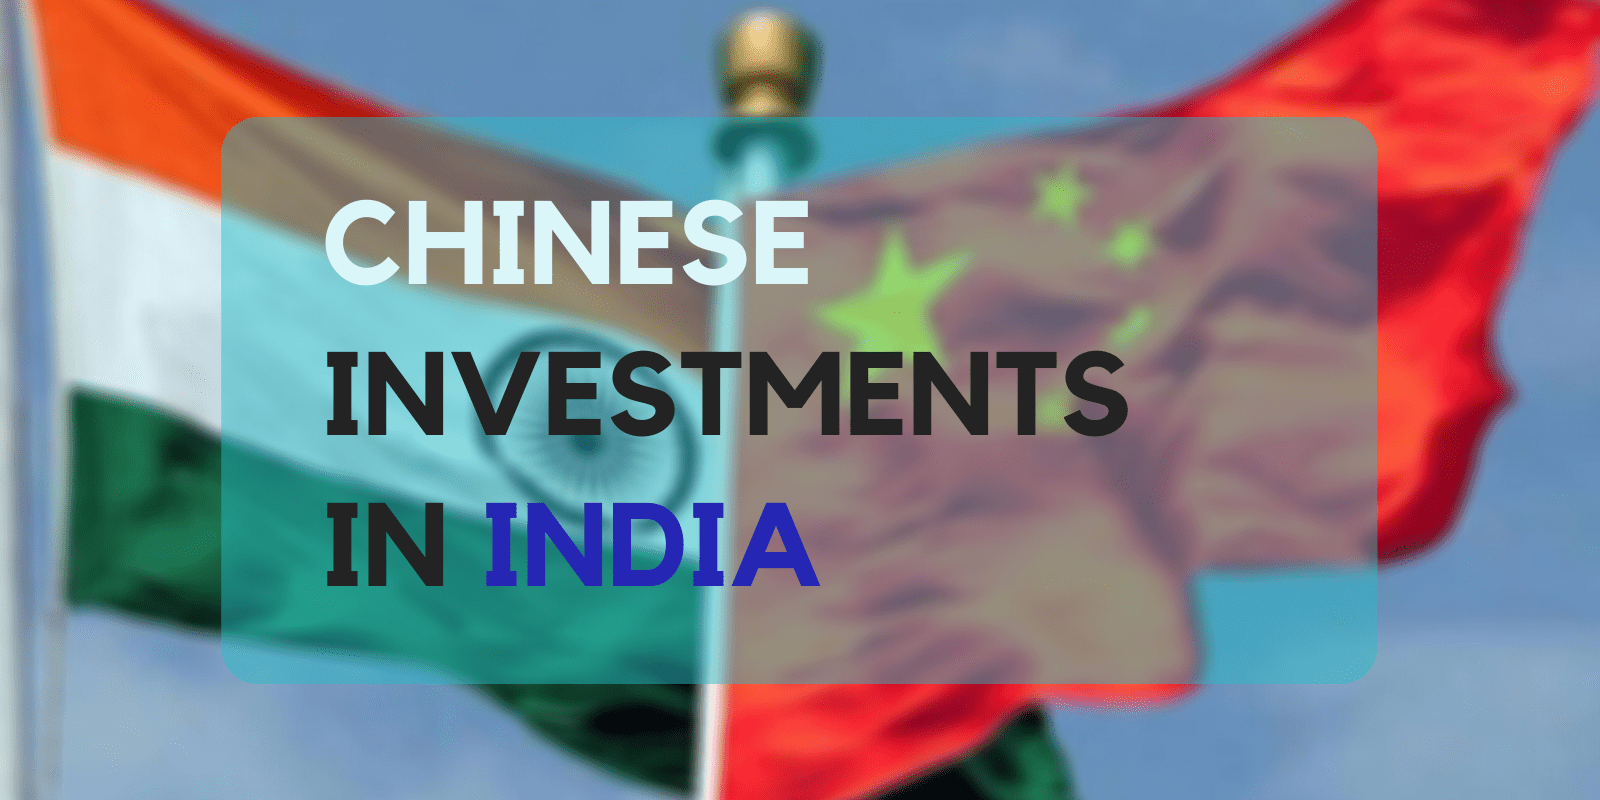 Top Indian Companies that are funded by Chinese Investors